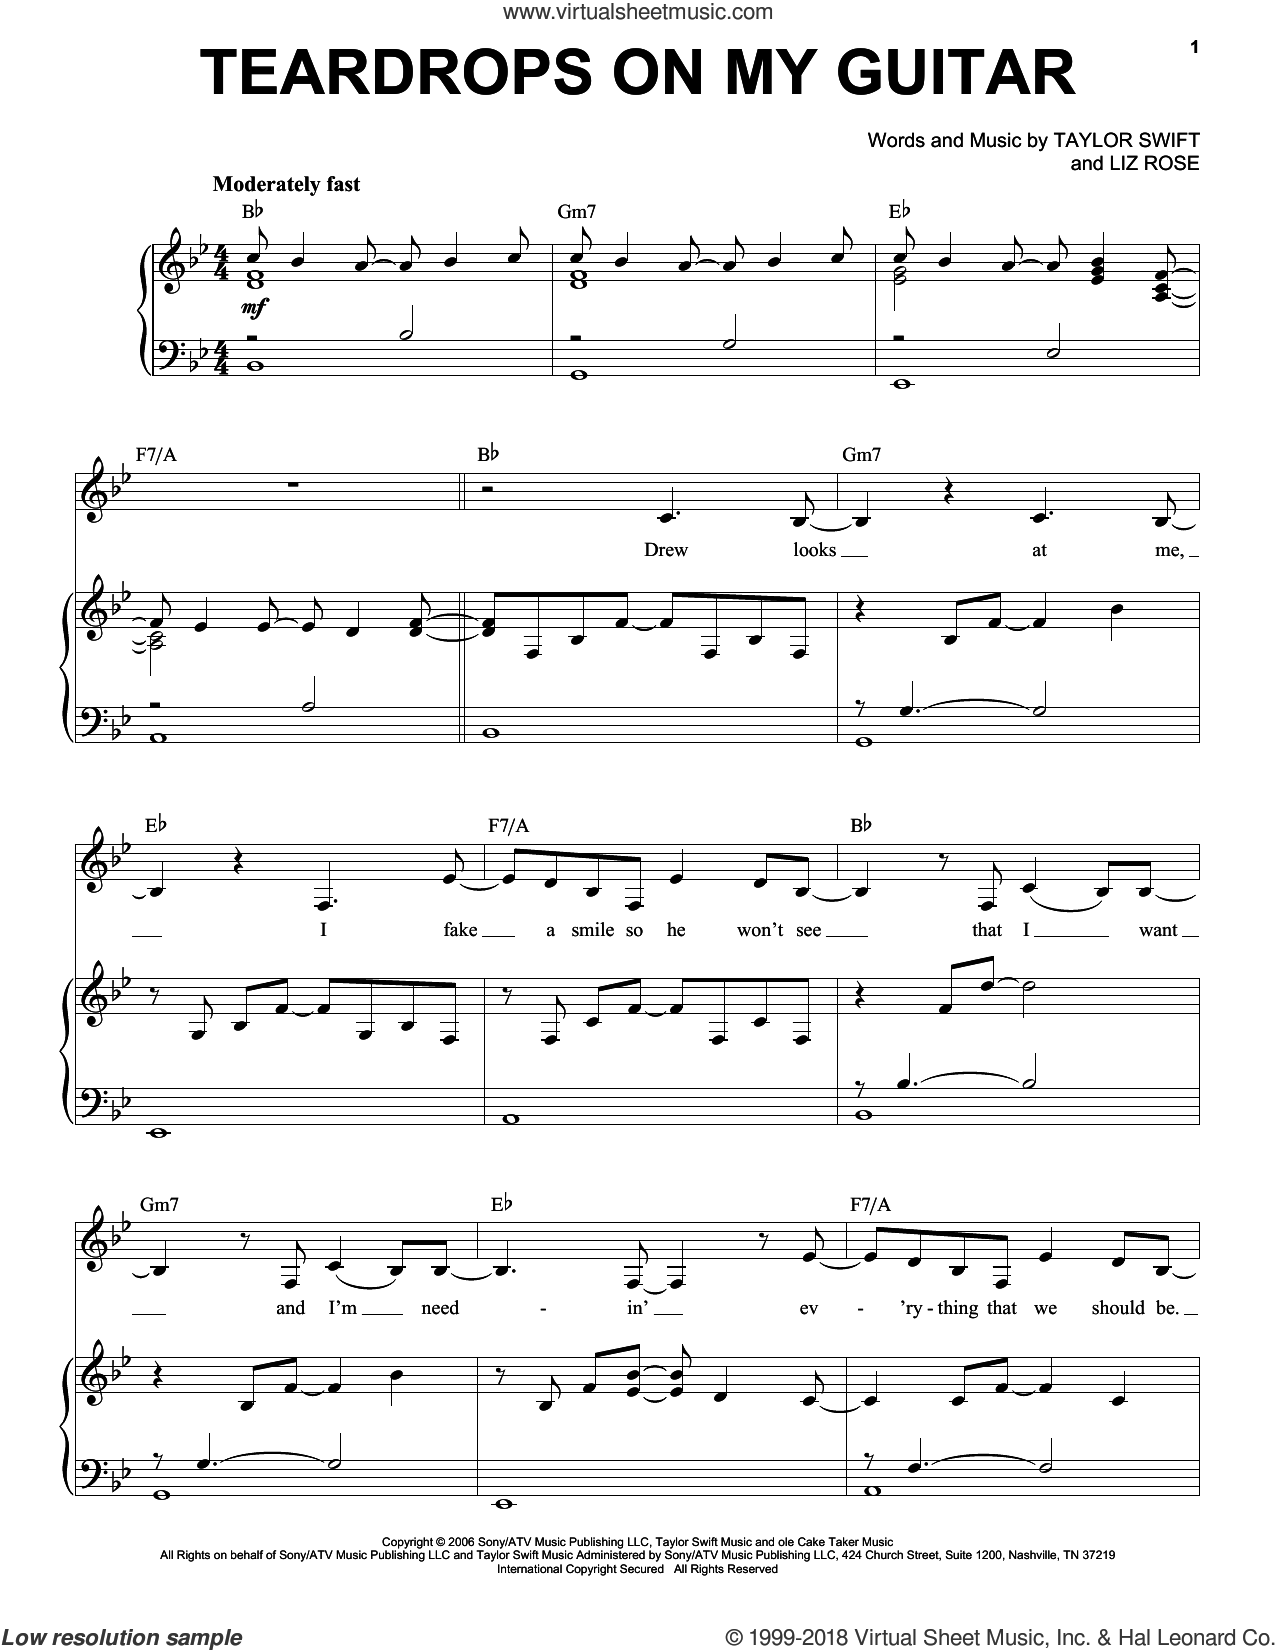 Teardrops On My Guitar sheet music for voice and piano by Liz Rose and Taylor Swift. Score Image Preview.